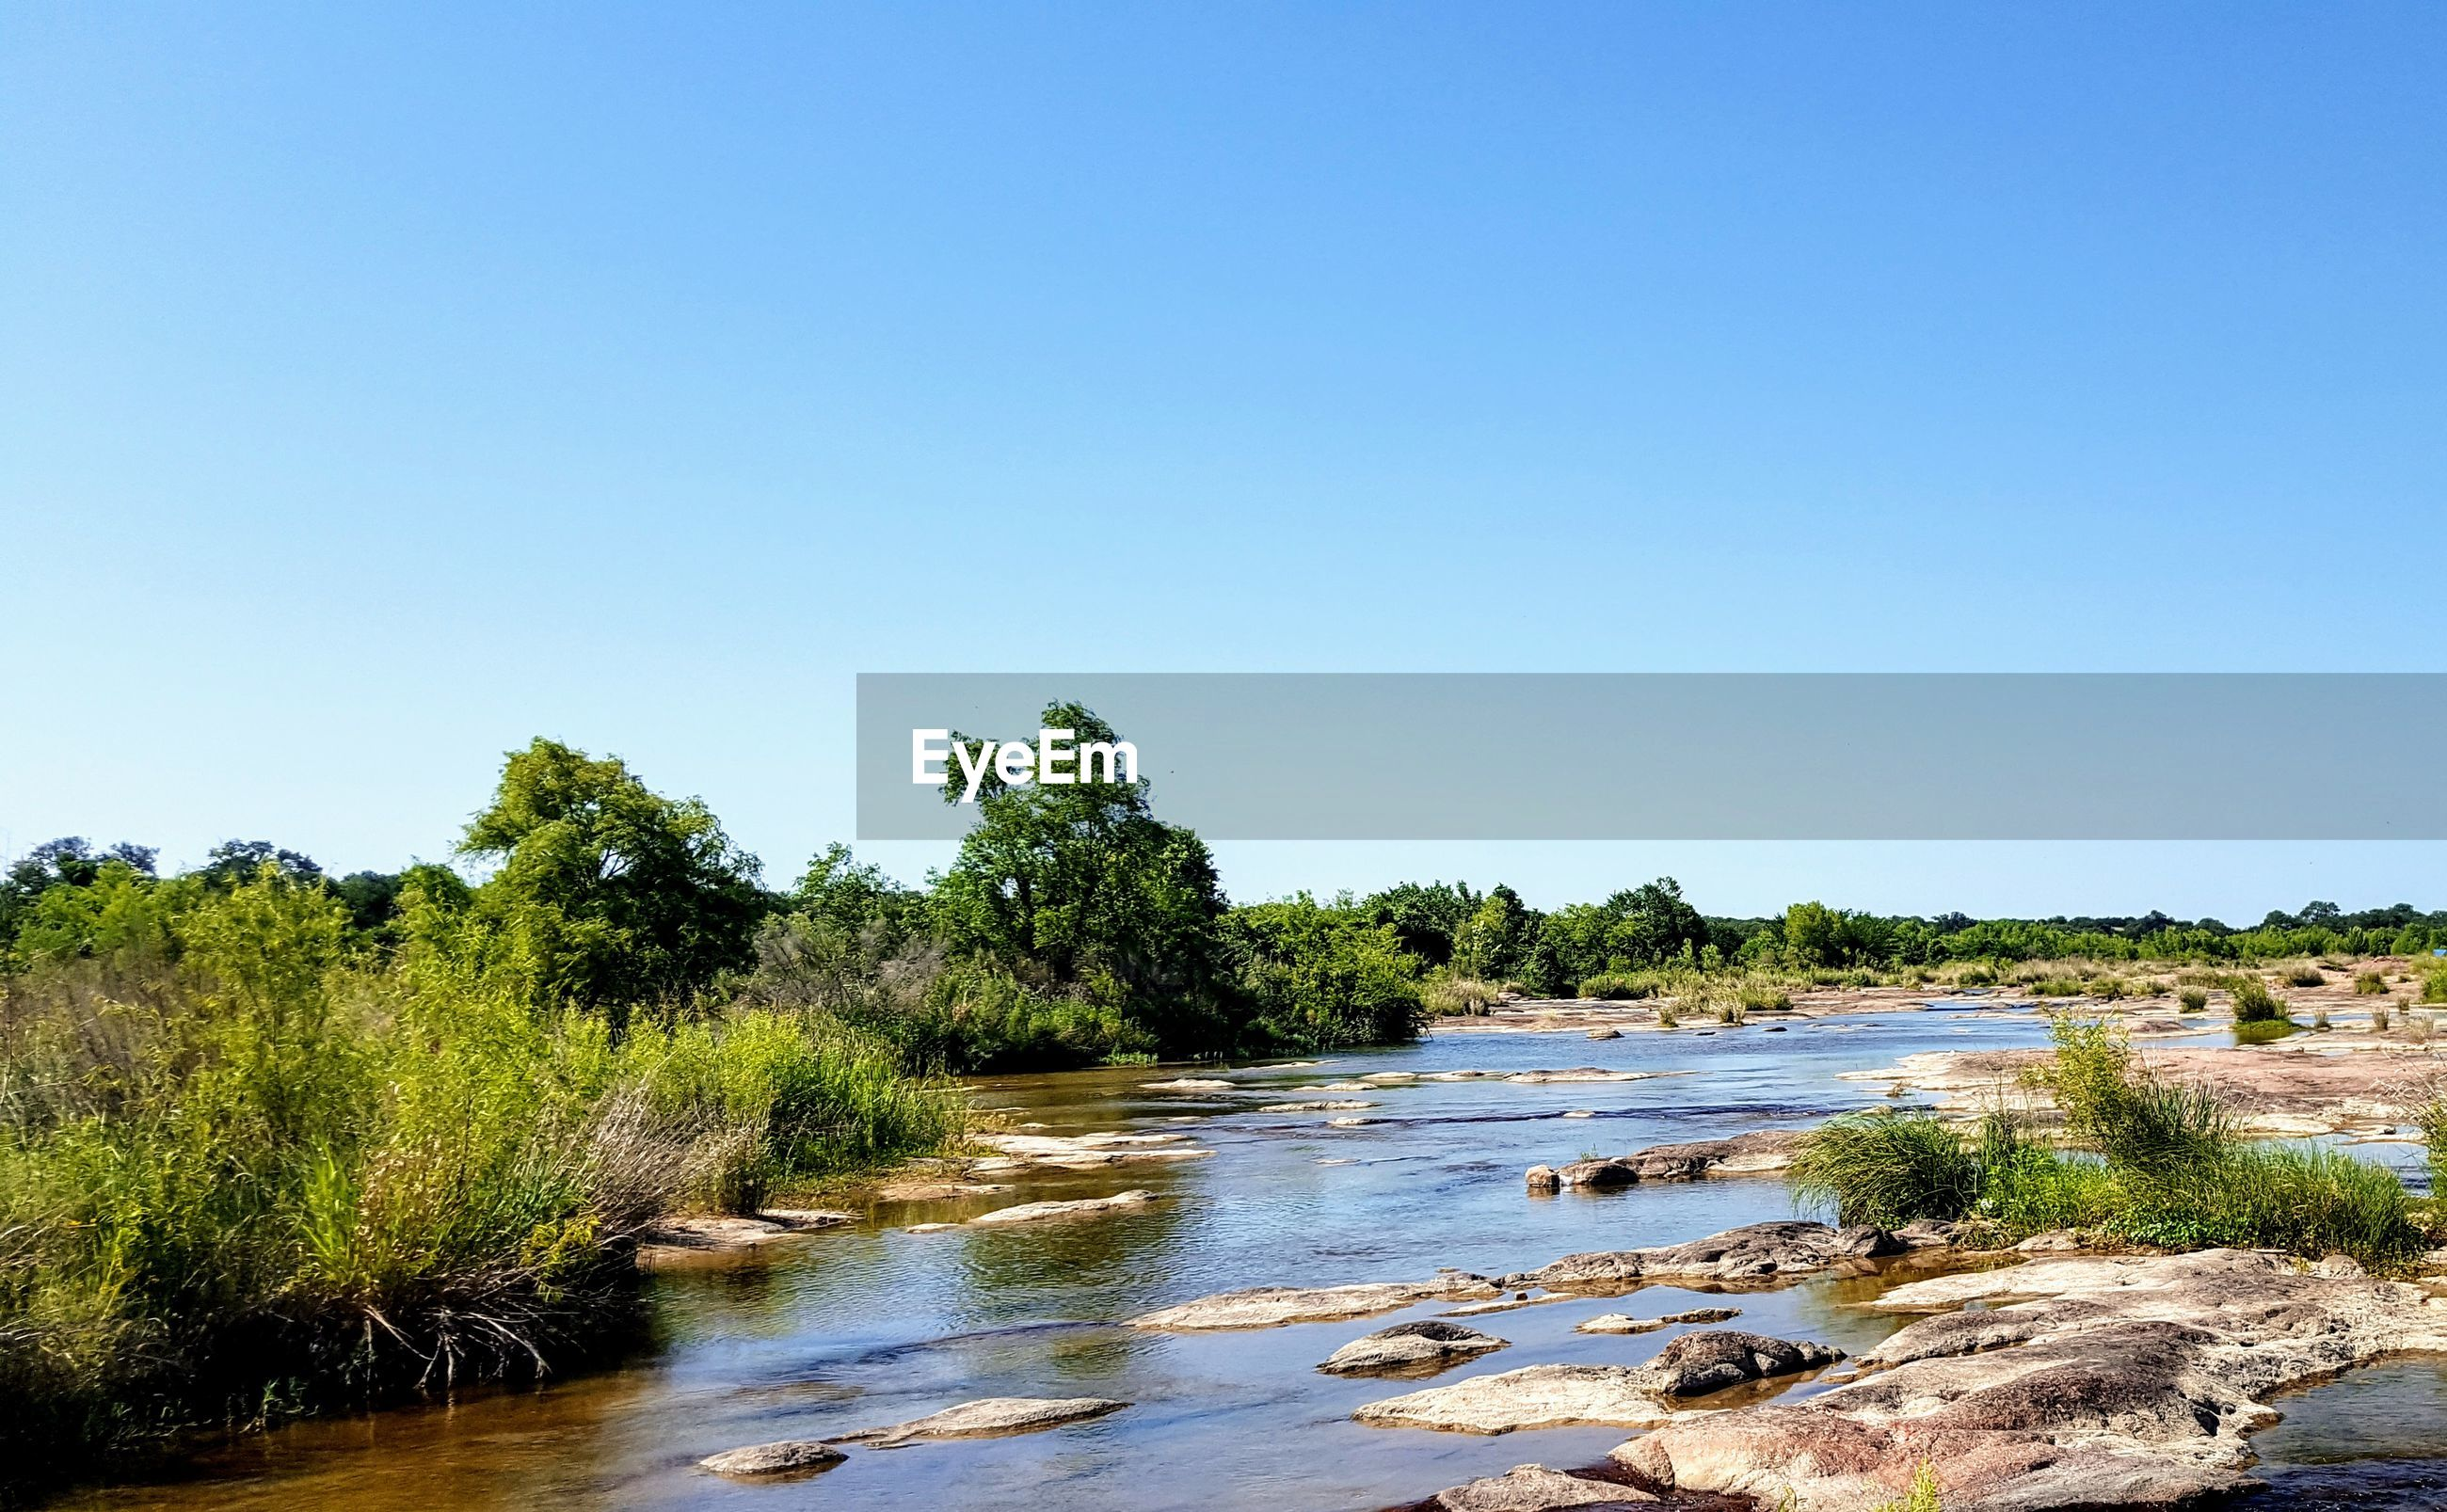 Scenic view of river amidst trees against clear sky